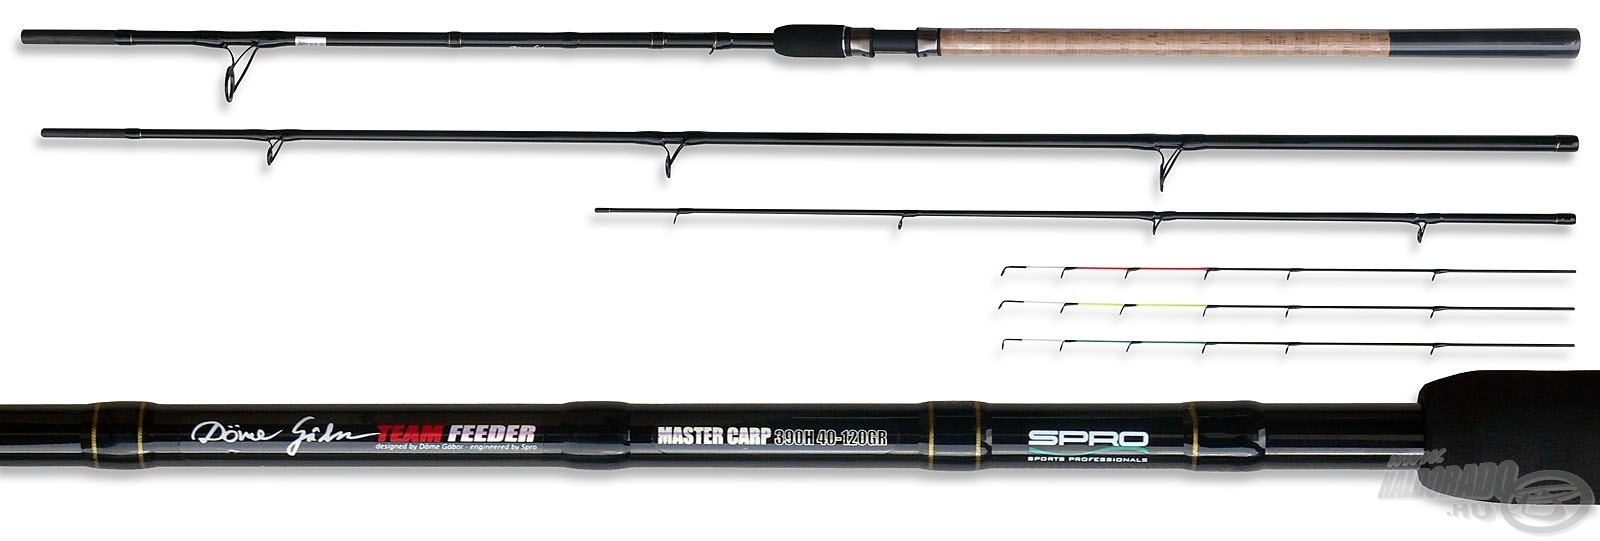 SPRO Team Feeder Master Carp 360H - by D�me G�bor 20500Ft